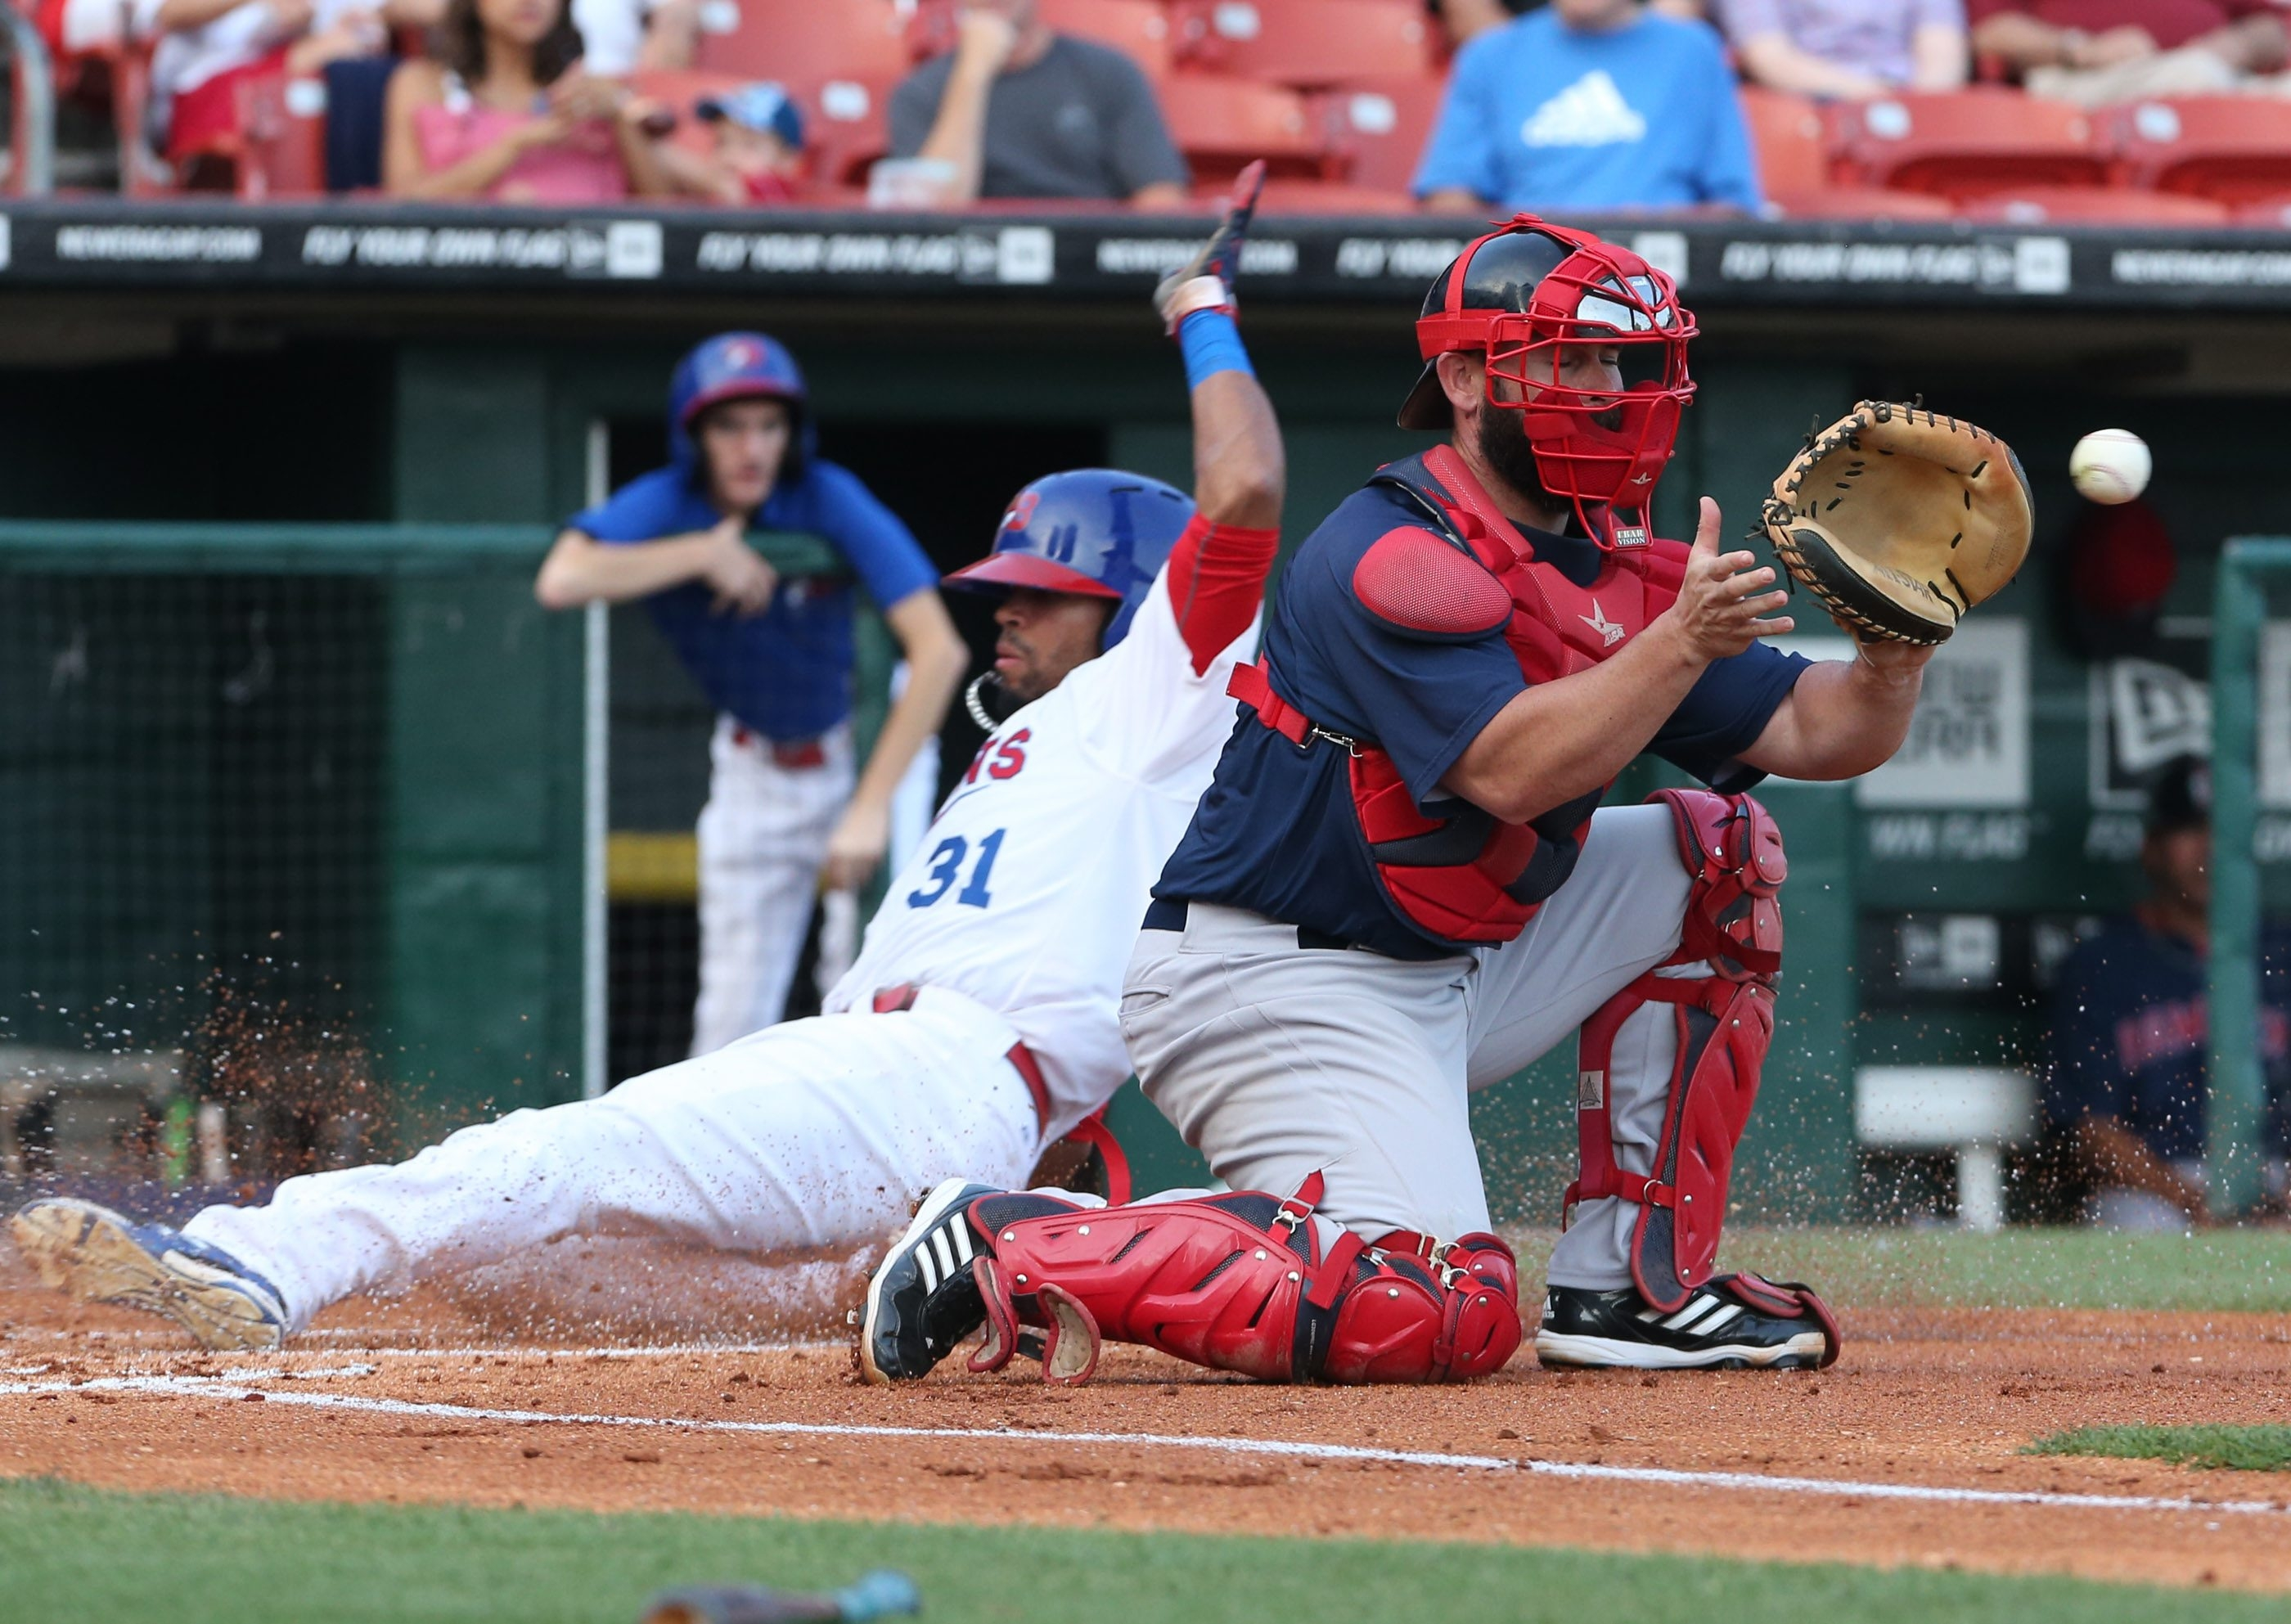 Bisons' Dalton Pompey slides across home plate for a run in front of PawSox catcher Dan Butler in the first inning.